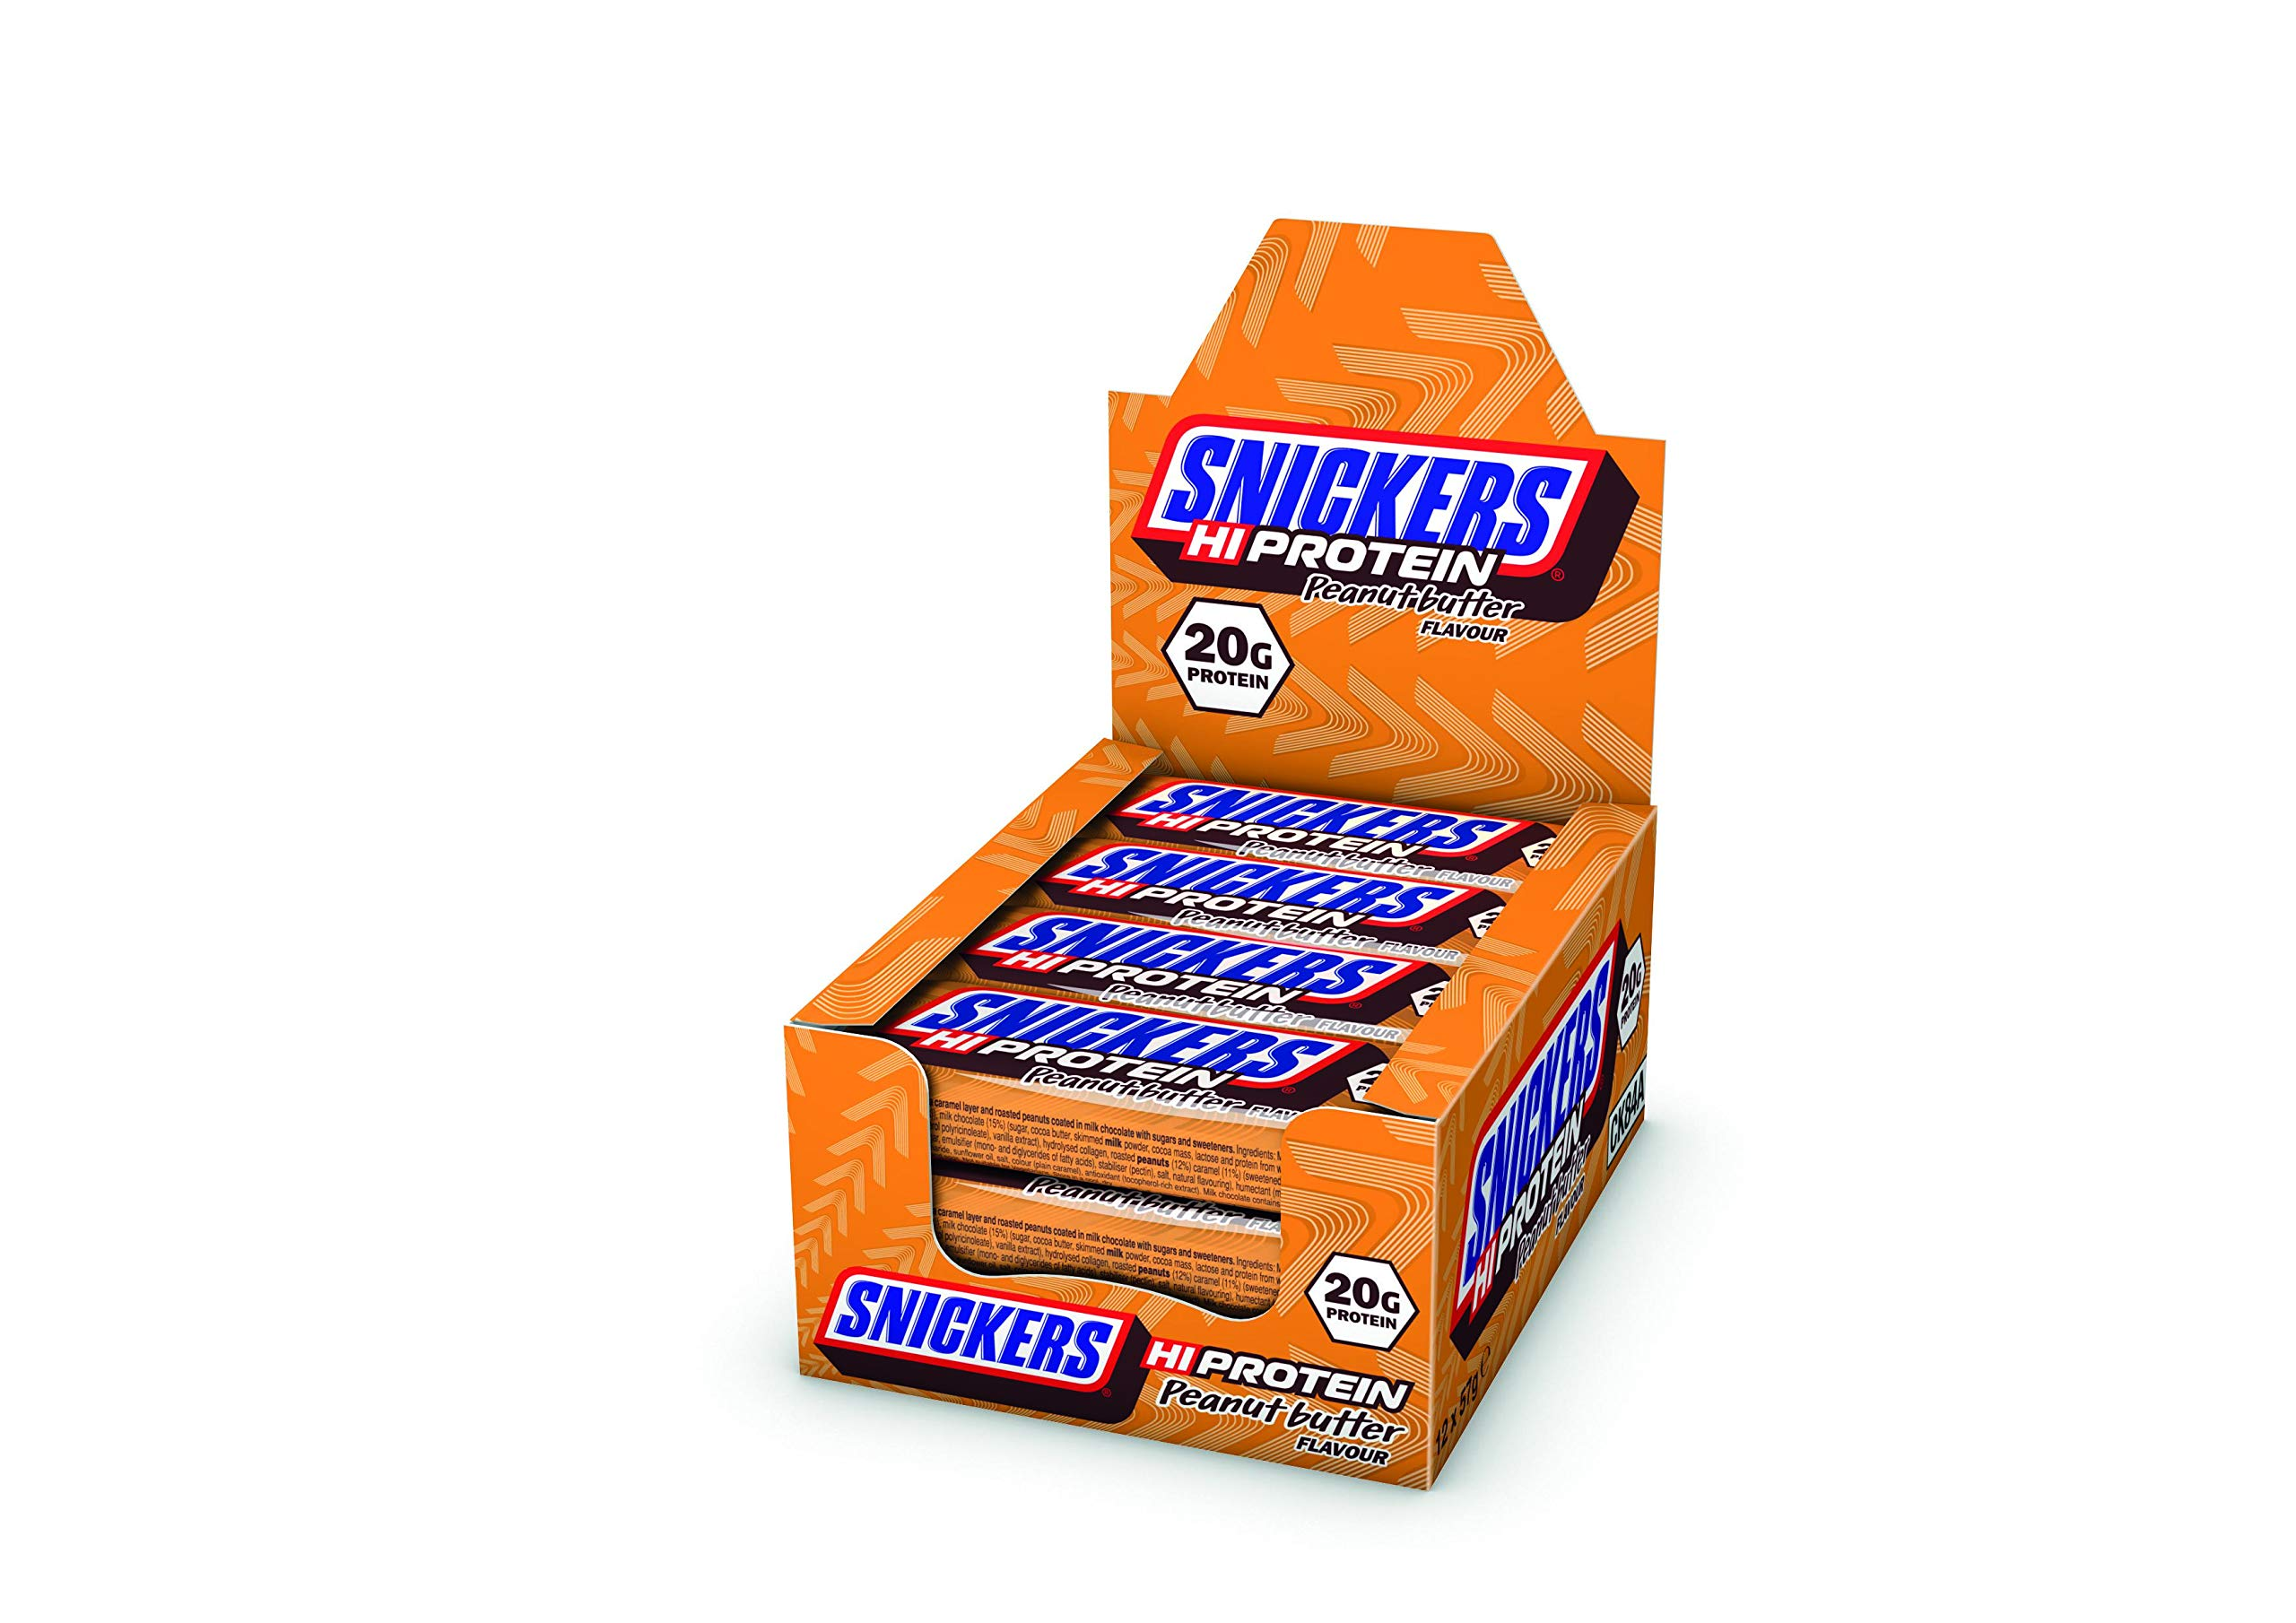 Mars Protein Snickers Hi Flavour Bar (12 x 57g) High Snack with Caramel Peanuts and Milk Chocolate Contains 20g FID64798, Peanut Butter, 684 Gram